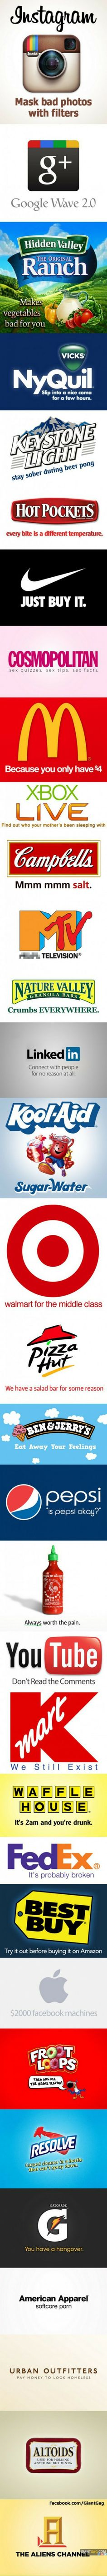 Images of the week, 75 images. 33 Honest Company Slogans